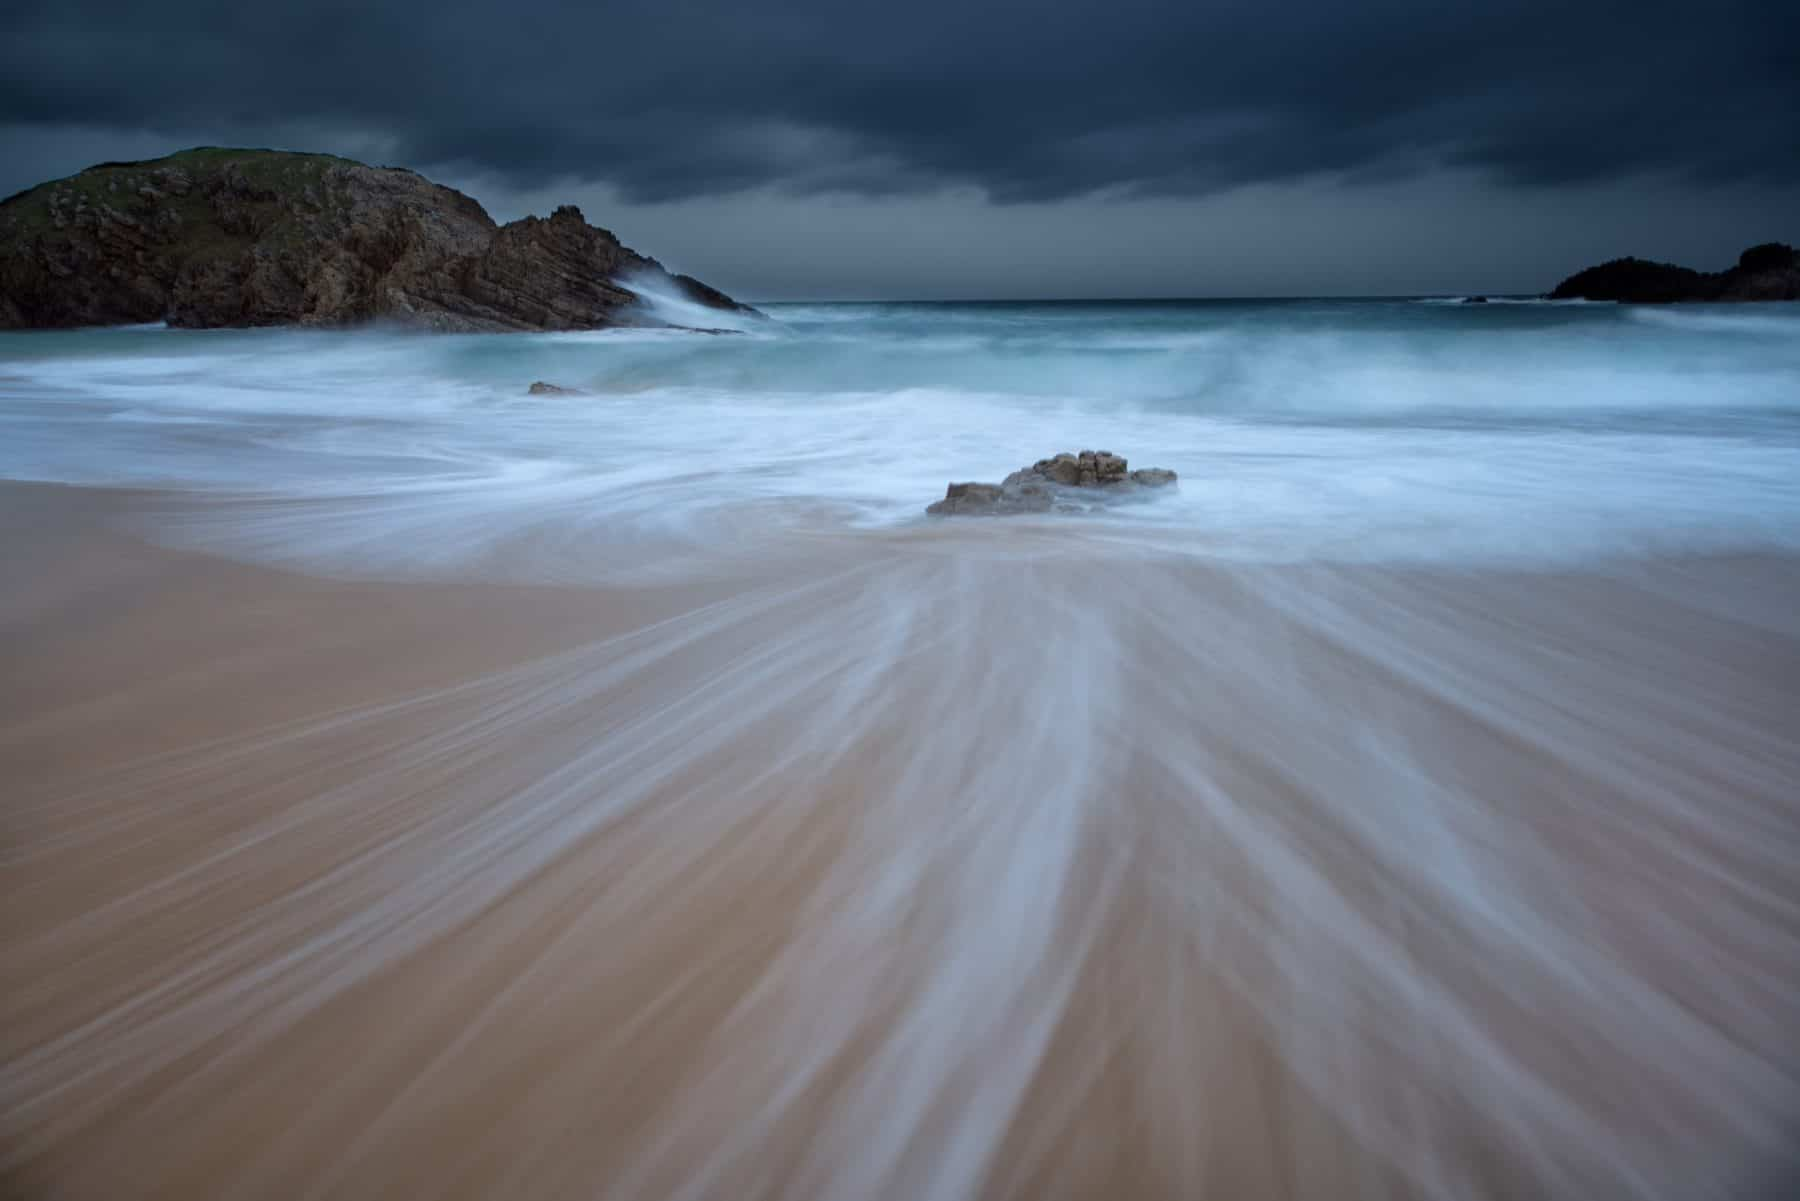 Long exposure beach photography